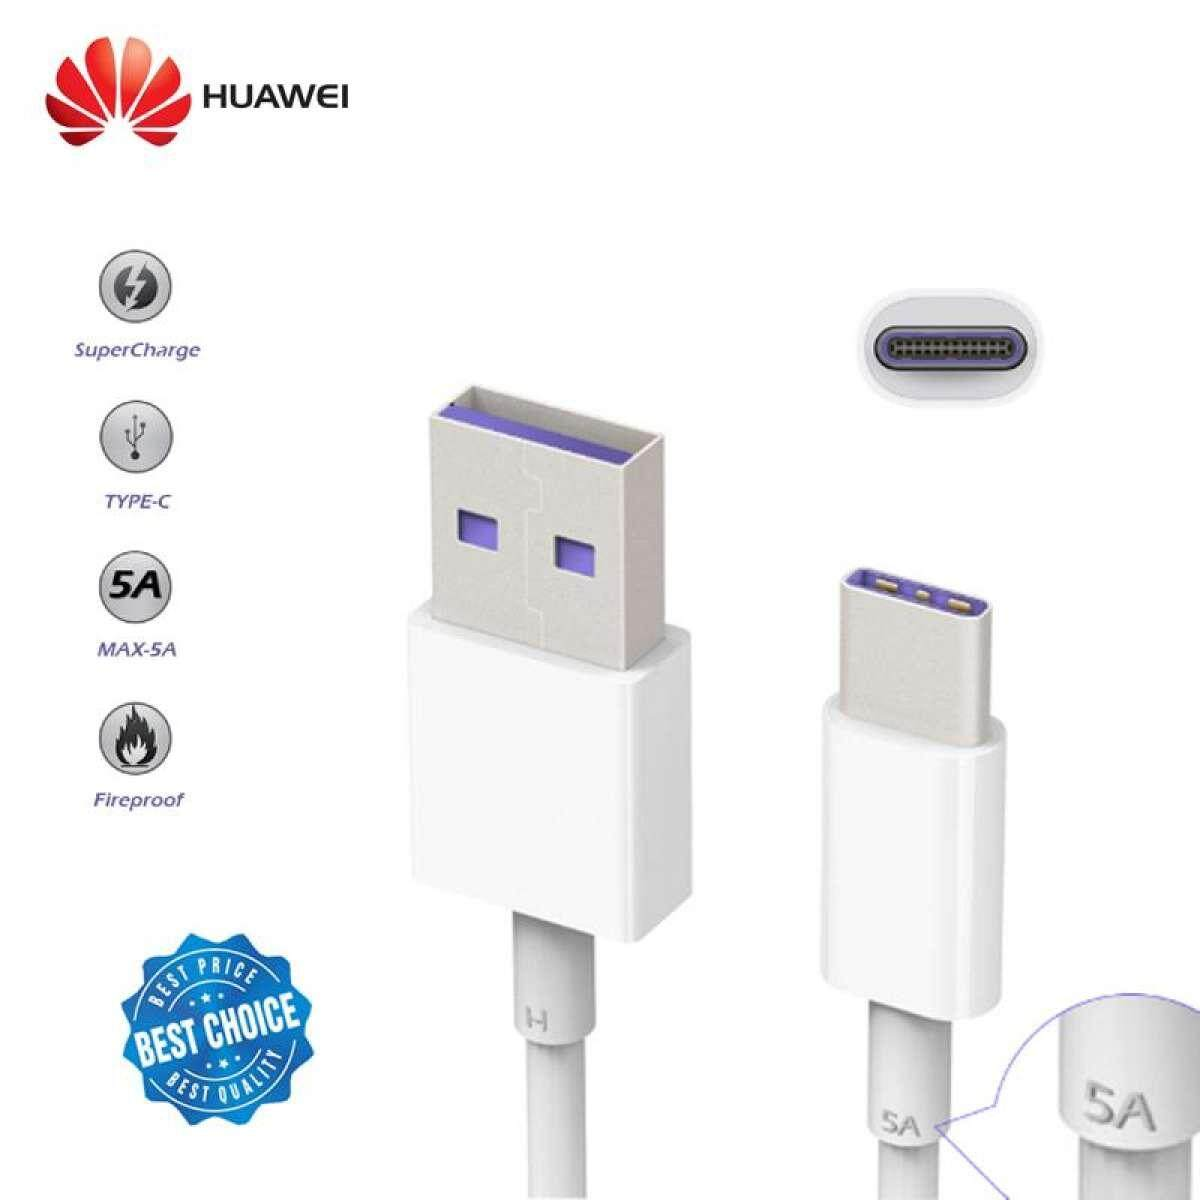 100% Original Huawei 5a Cable Super Charge Cable P10 P20 P30 Mate10 Mate20 Usb Type C 4.5v 5a Charging Data Sync Cable By Bojio News.